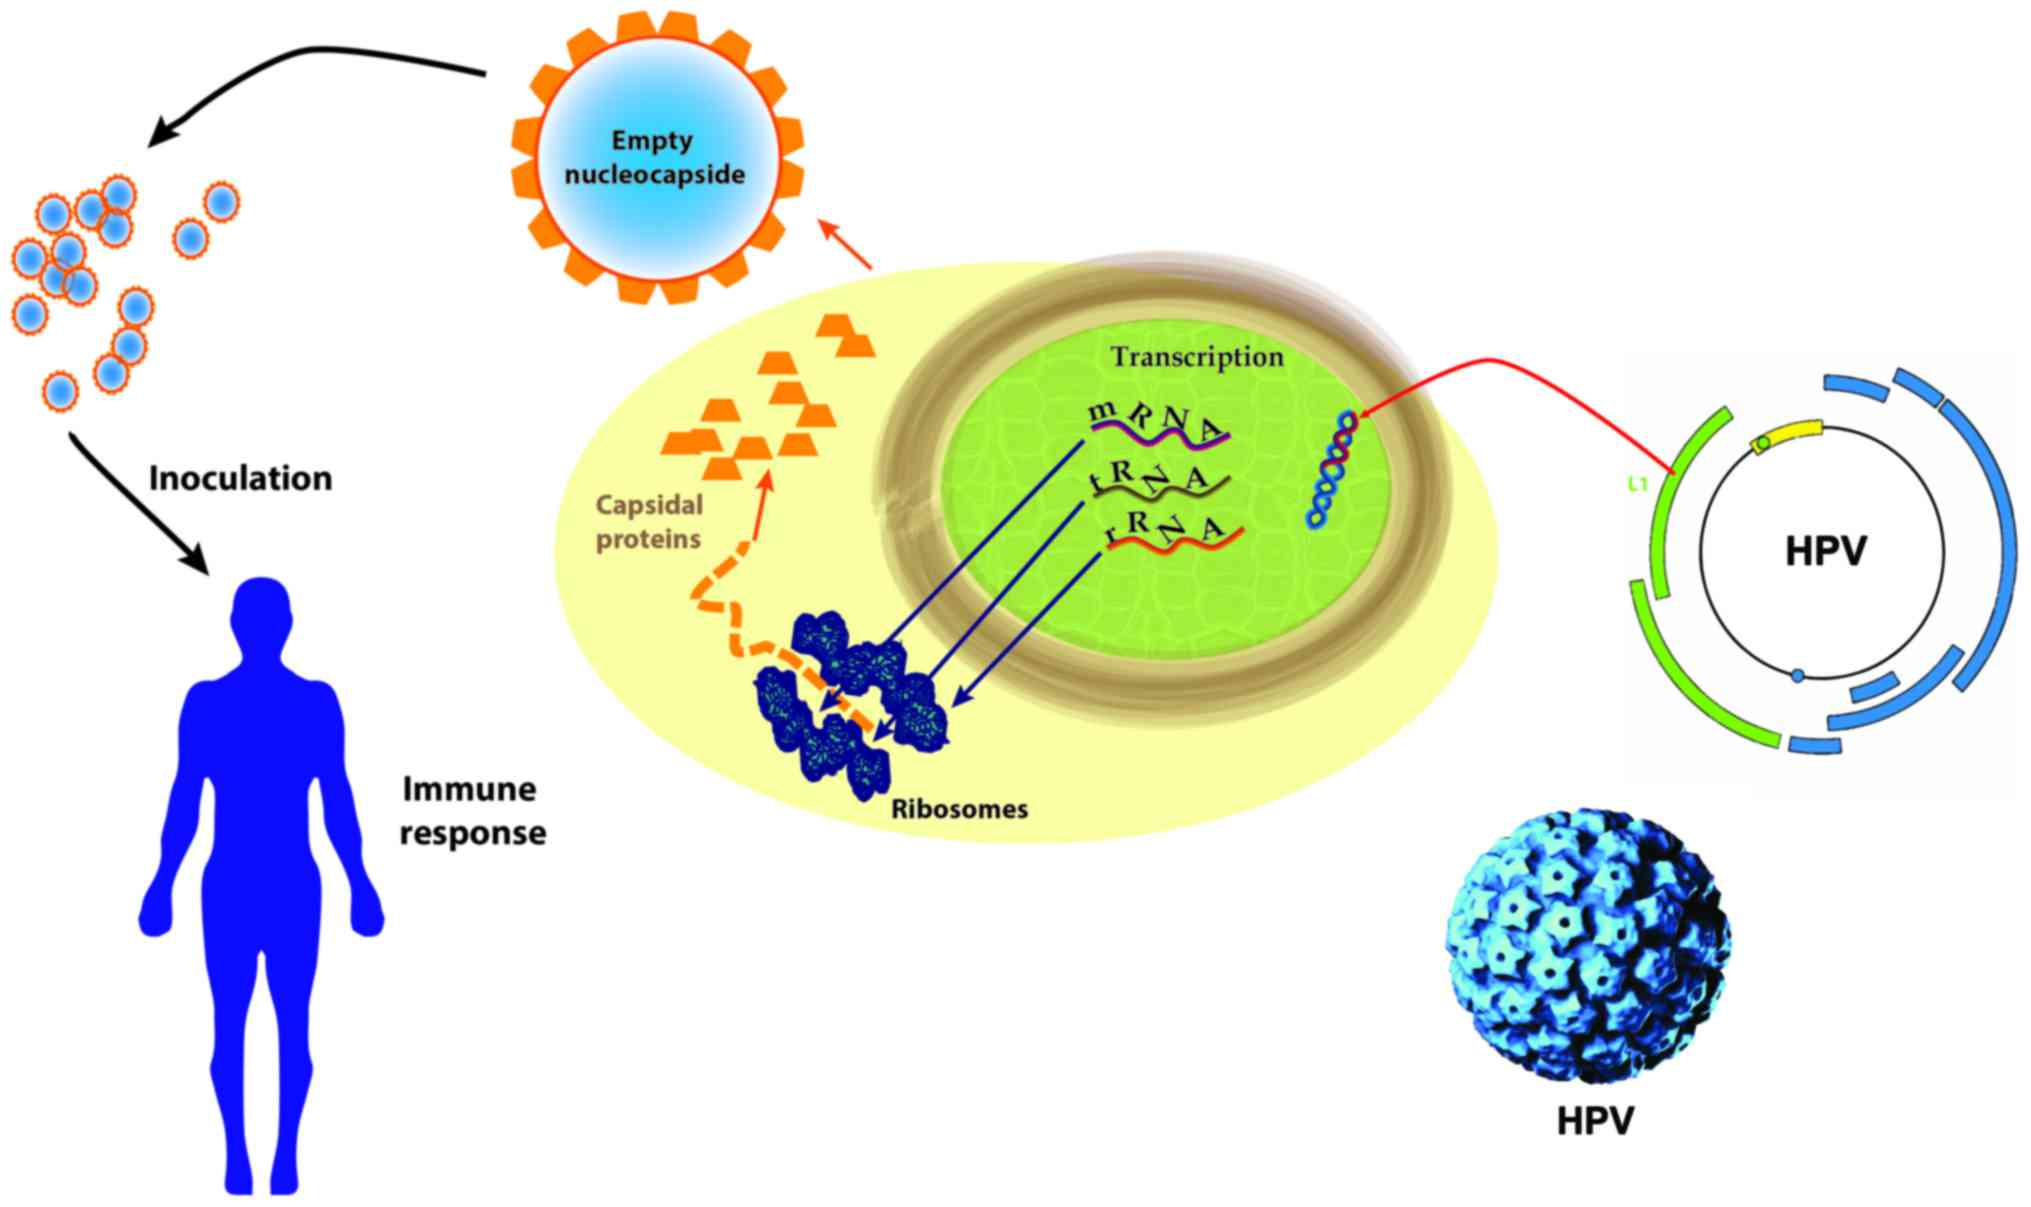 hpv virus and transmission)